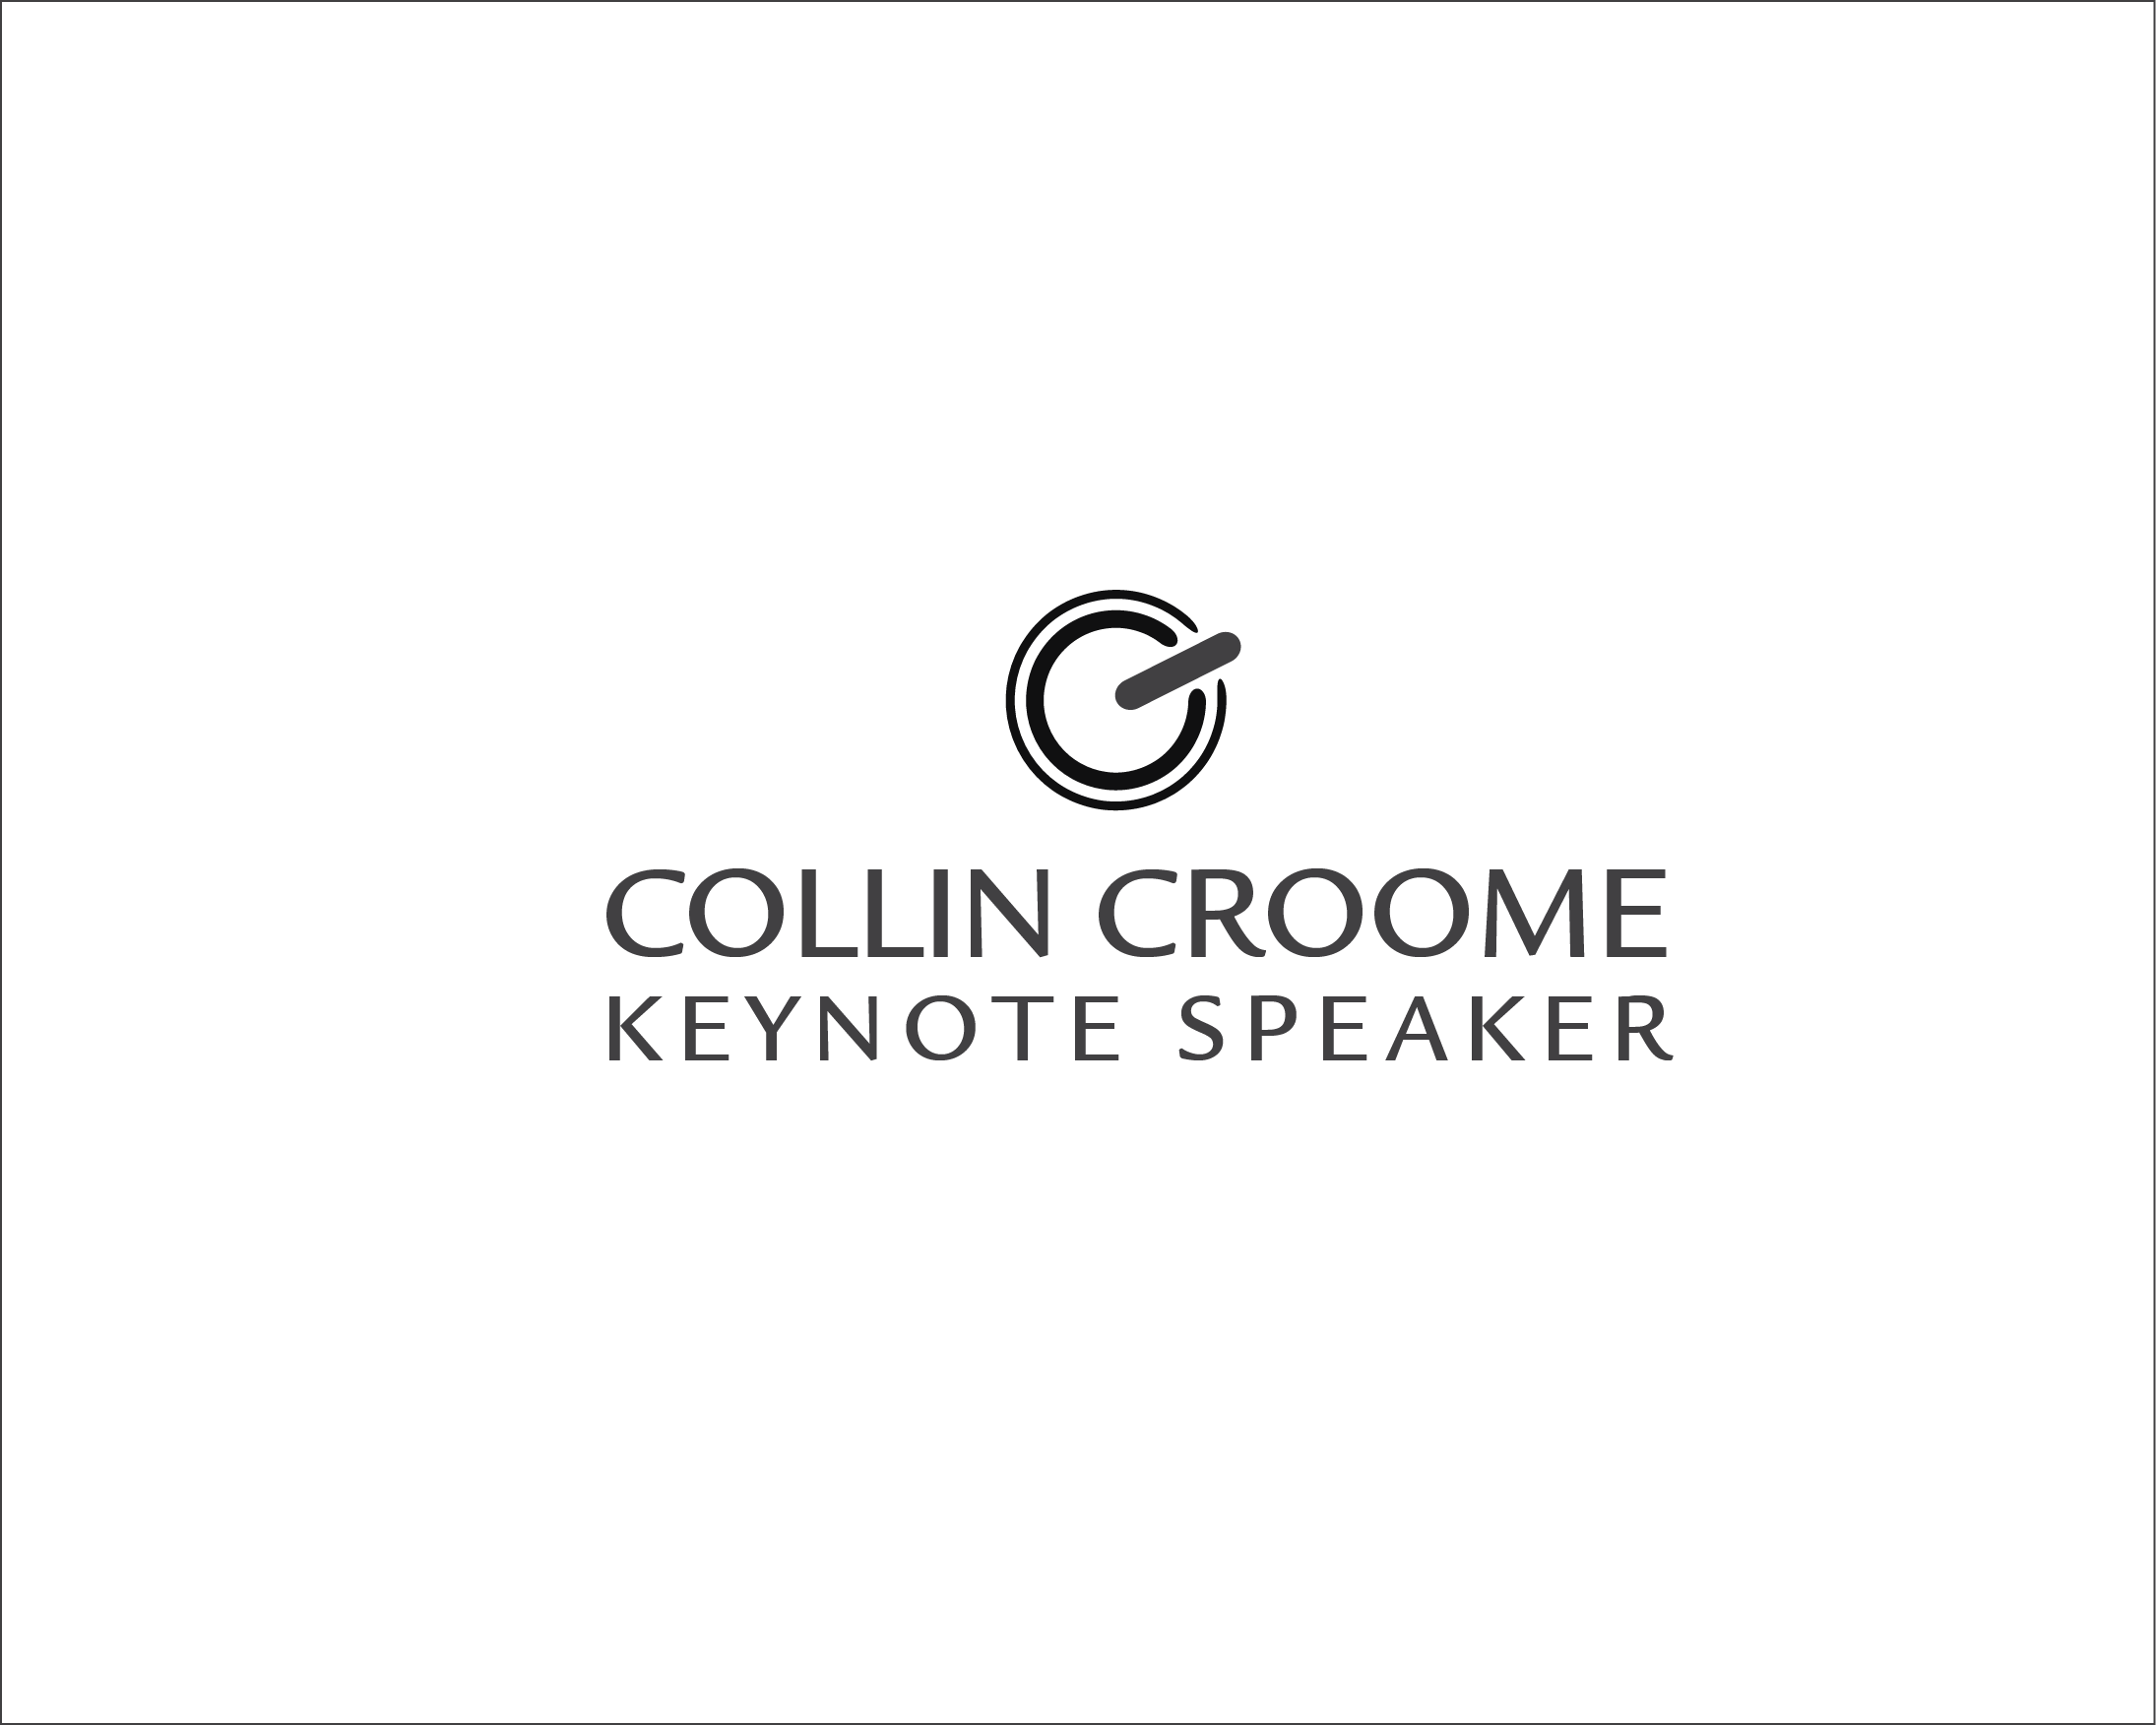 Logo Design by iwyn - Entry No. 206 in the Logo Design Contest Modern Logo Design for Collin Croome.